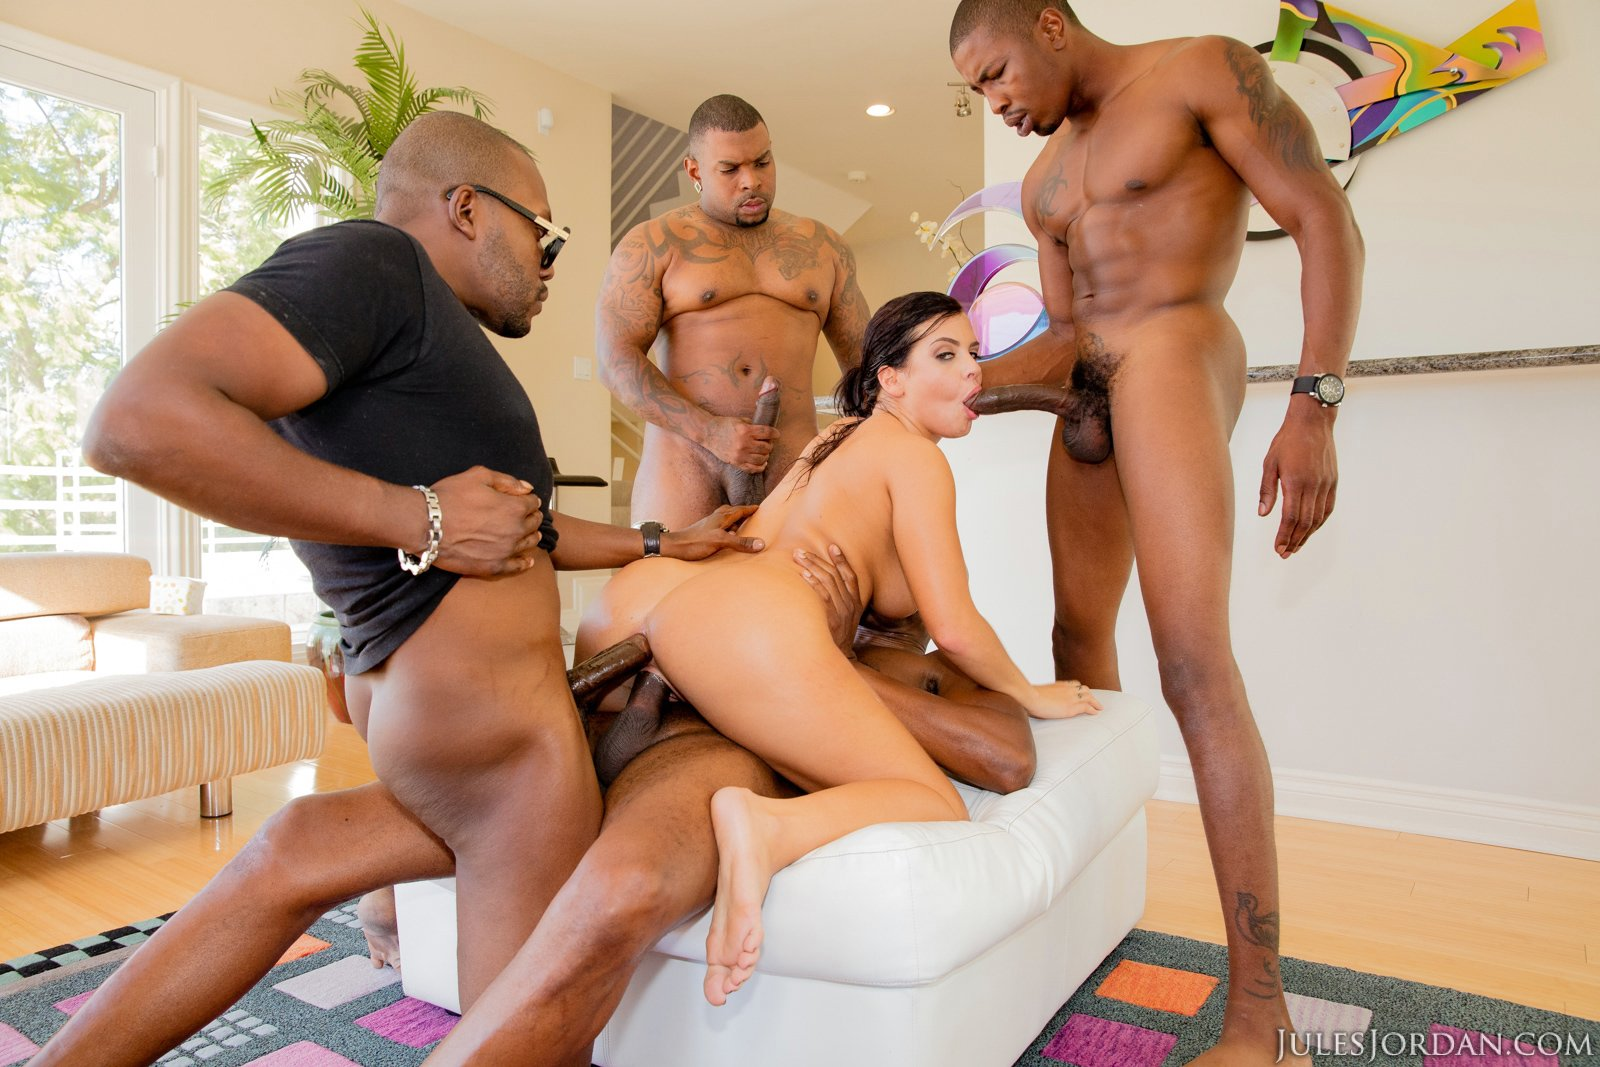 Me getting fucked by two black cocks 10